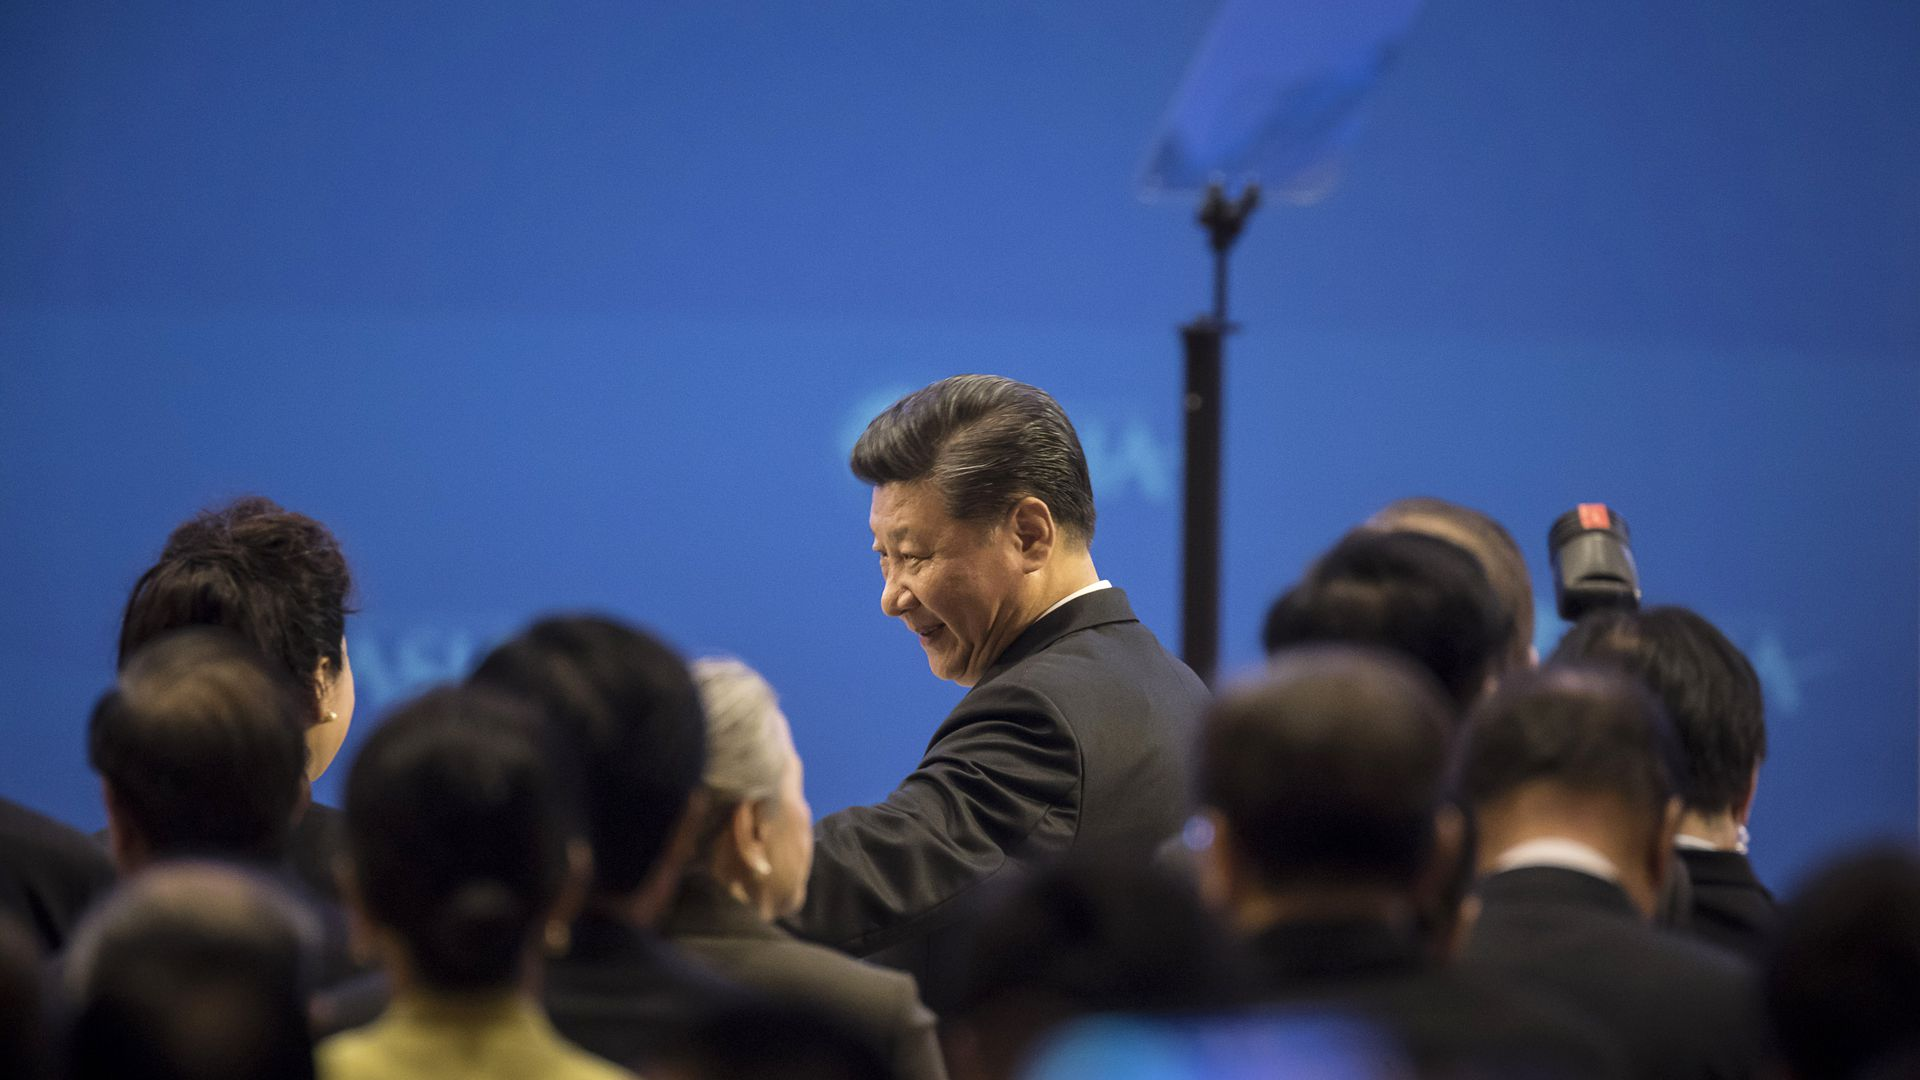 Xi Jinping walks past photographers to take the stage